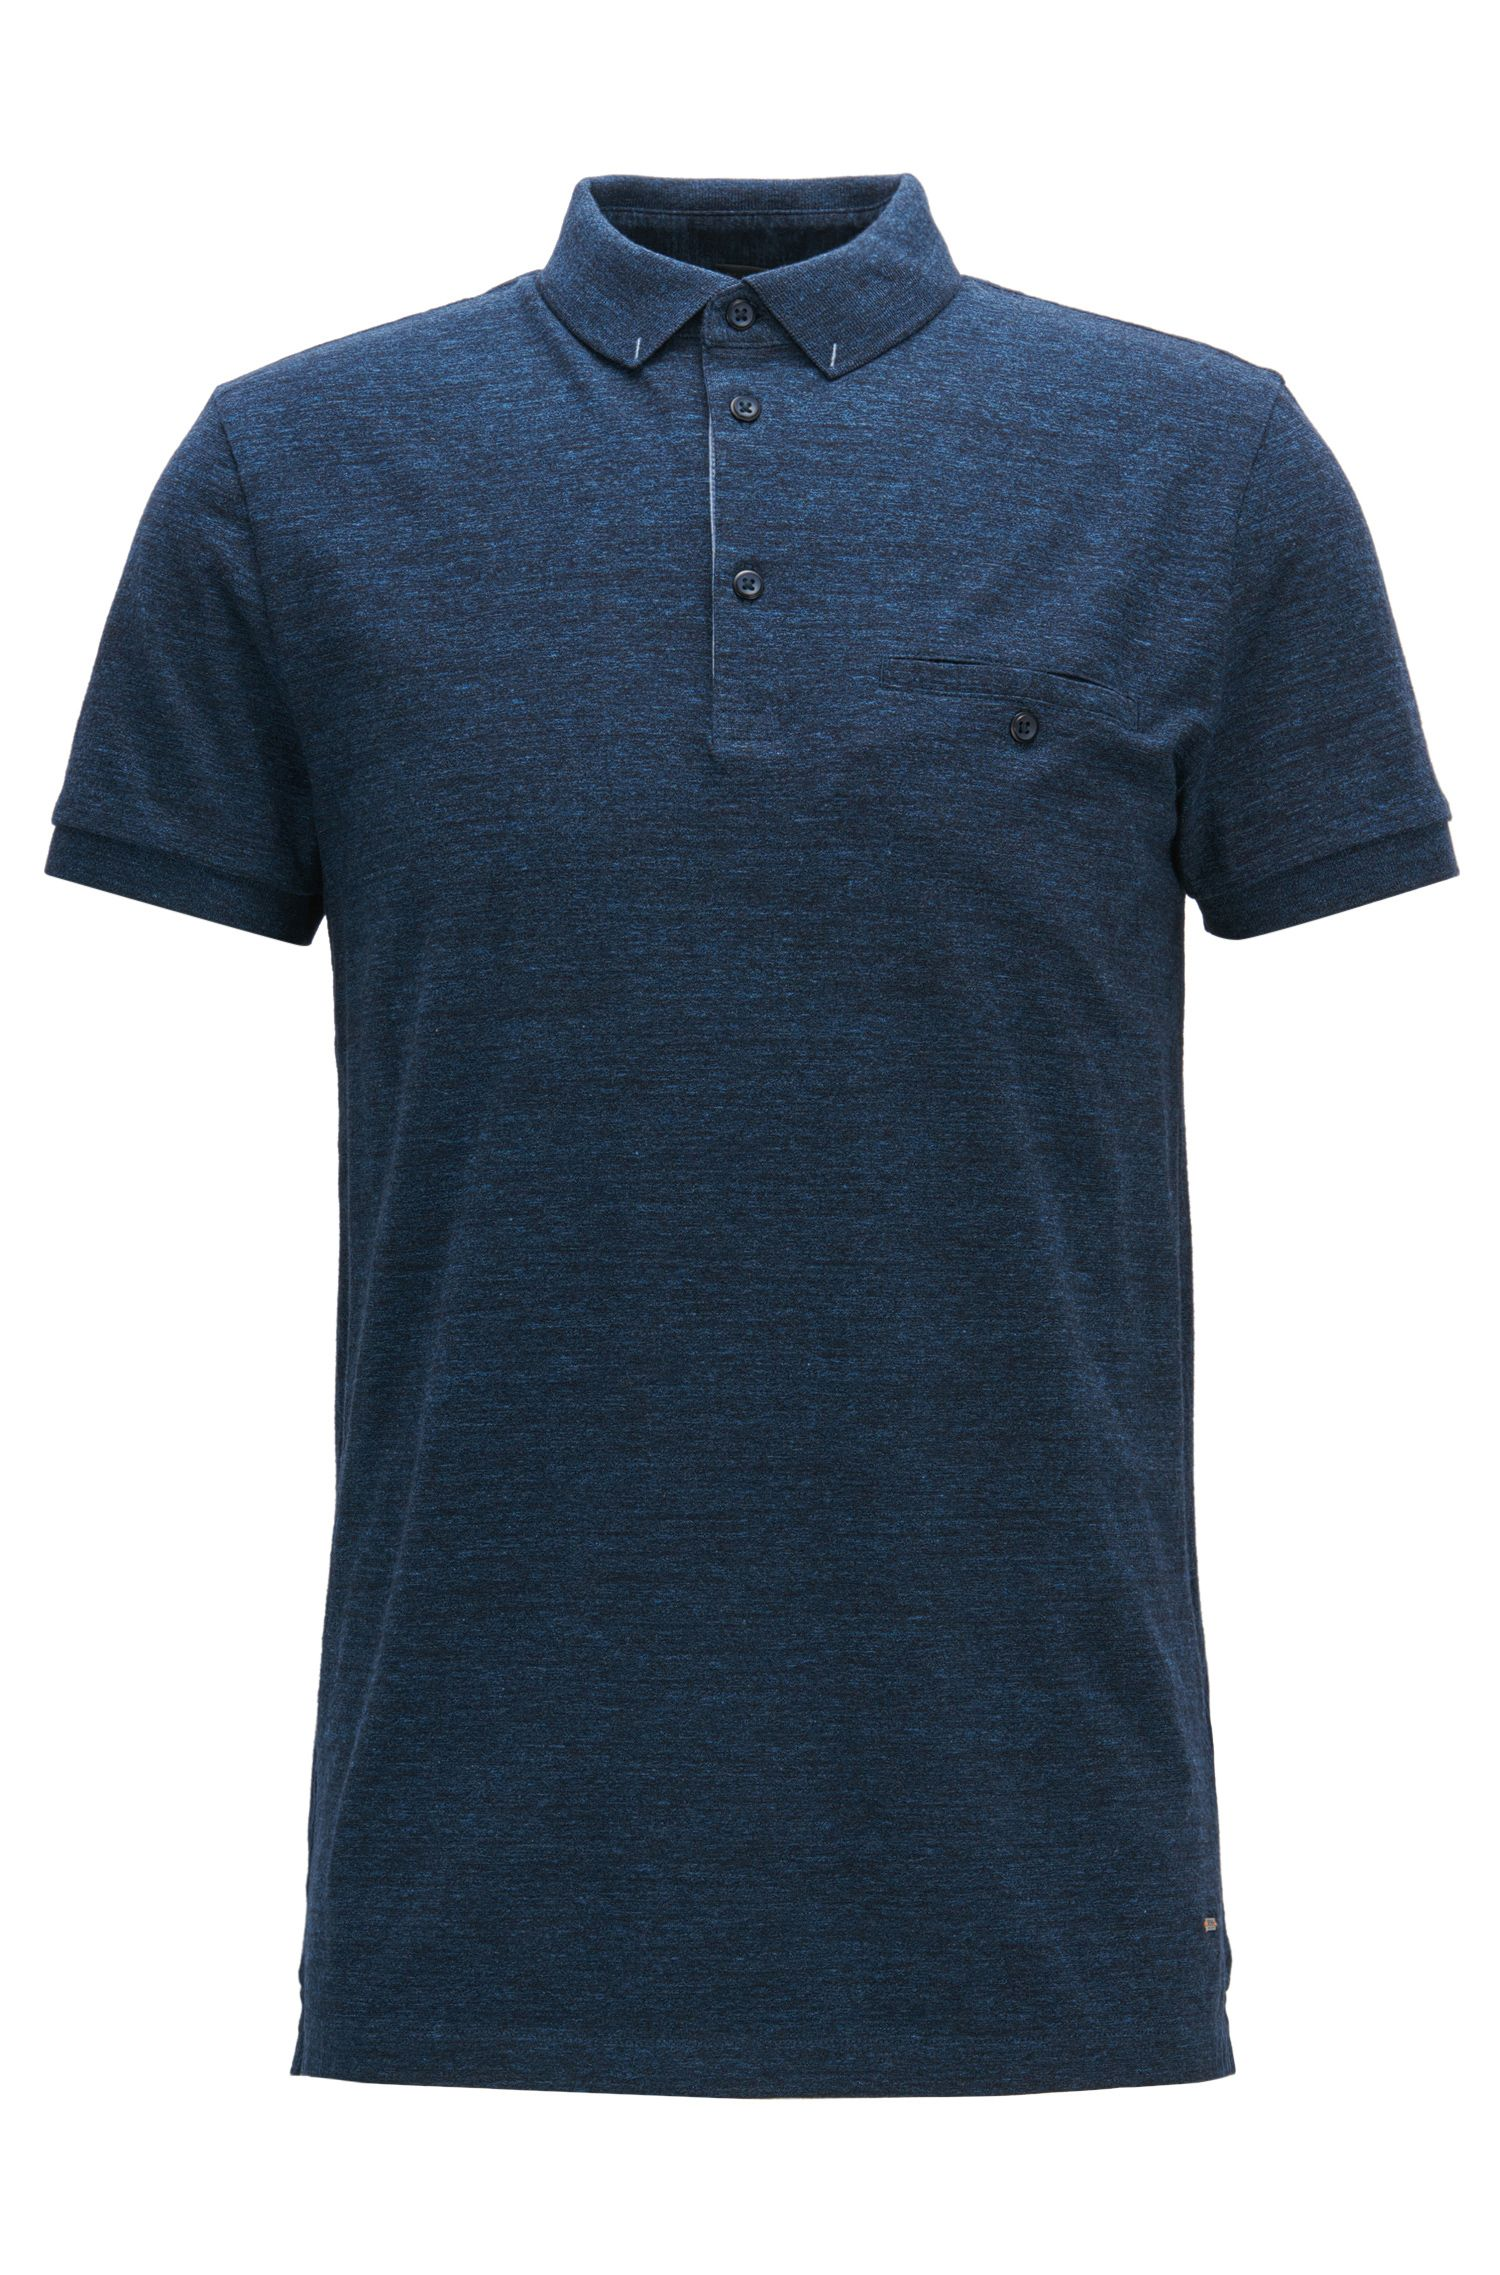 Regular-fit polo shirt in heathered cotton jersey